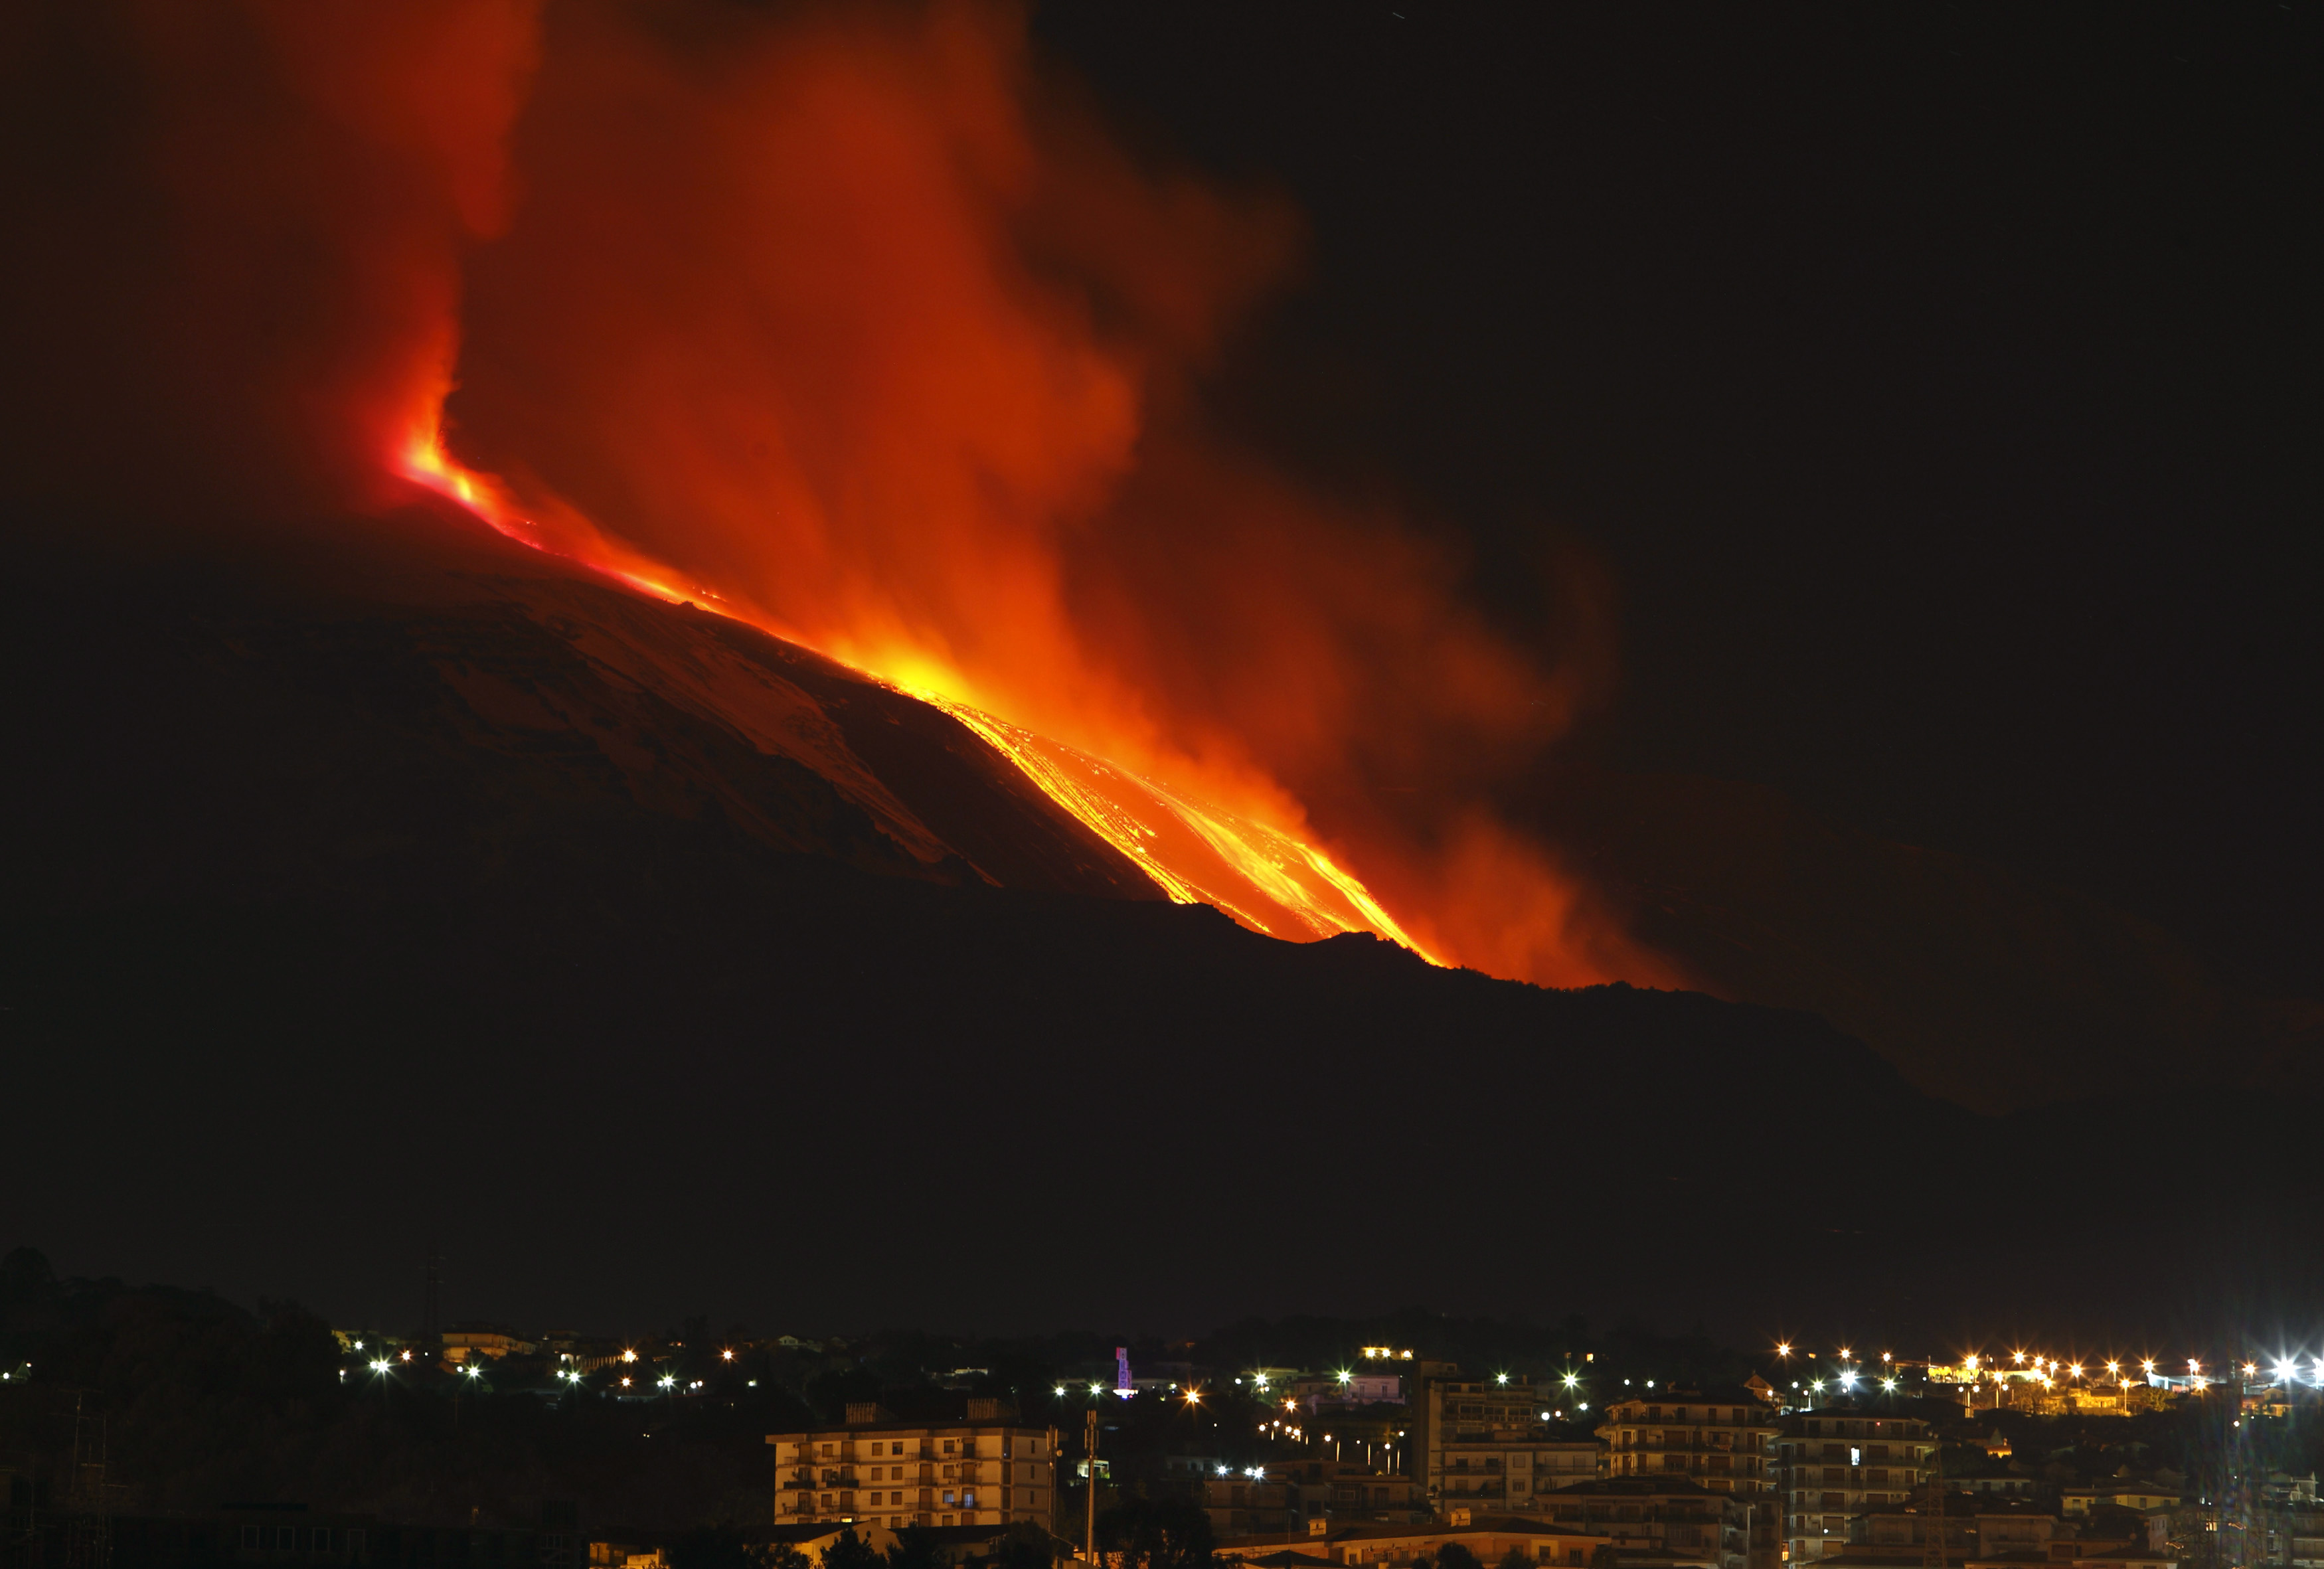 Mount Etna spews lava on the southern Italian island of Sicily January 13, 2011. Mount Etna is Europe's tallest and most active volcano.  REUTERS/Antonio Parrinello (ITALY - Tags: ENVIRONMENT SOCIETY IMAGES OF THE DAY)